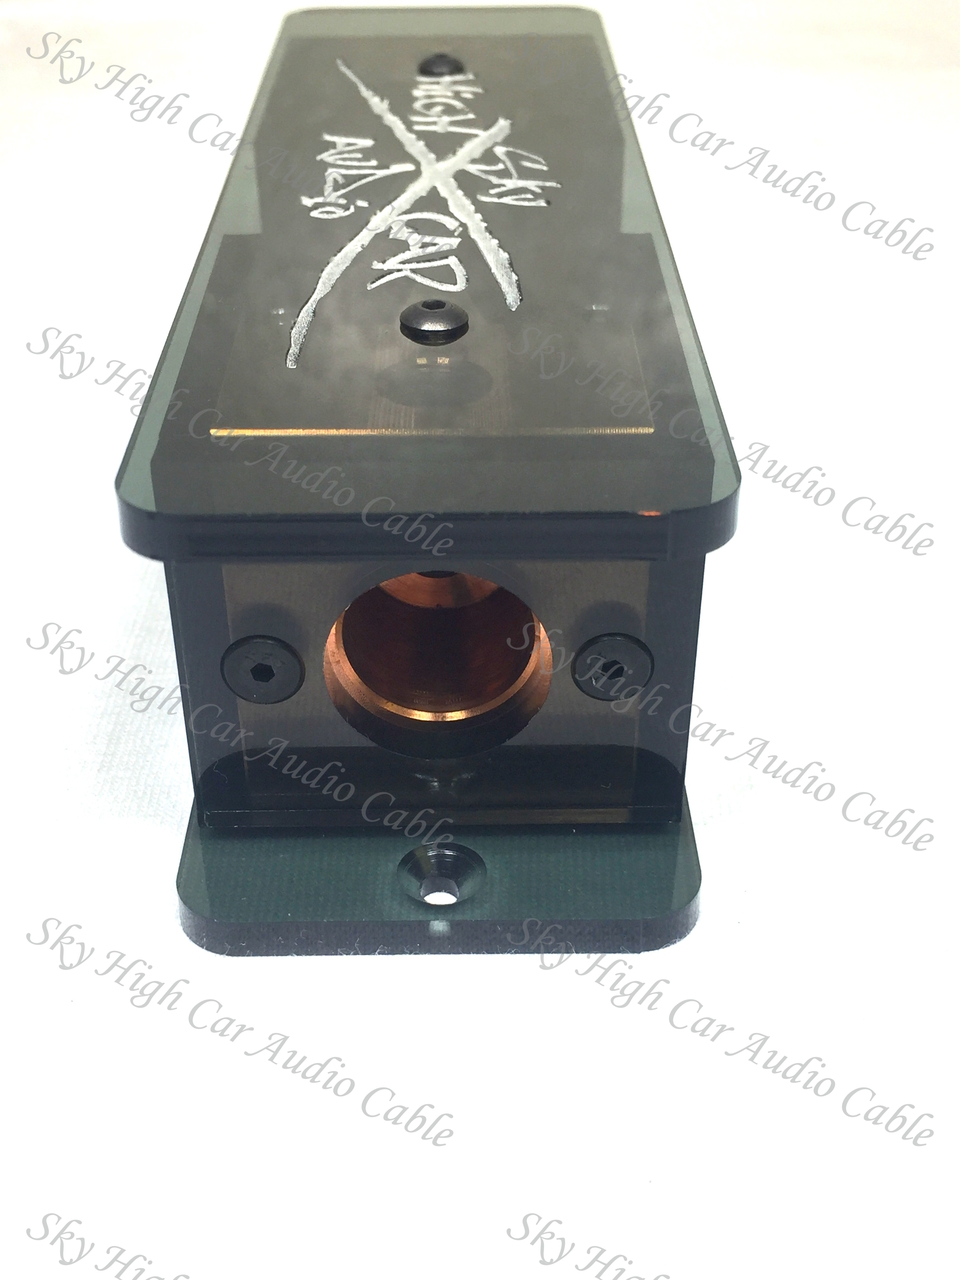 small resolution of  sky high car audio copper 2 0 anl fuse holder set screw